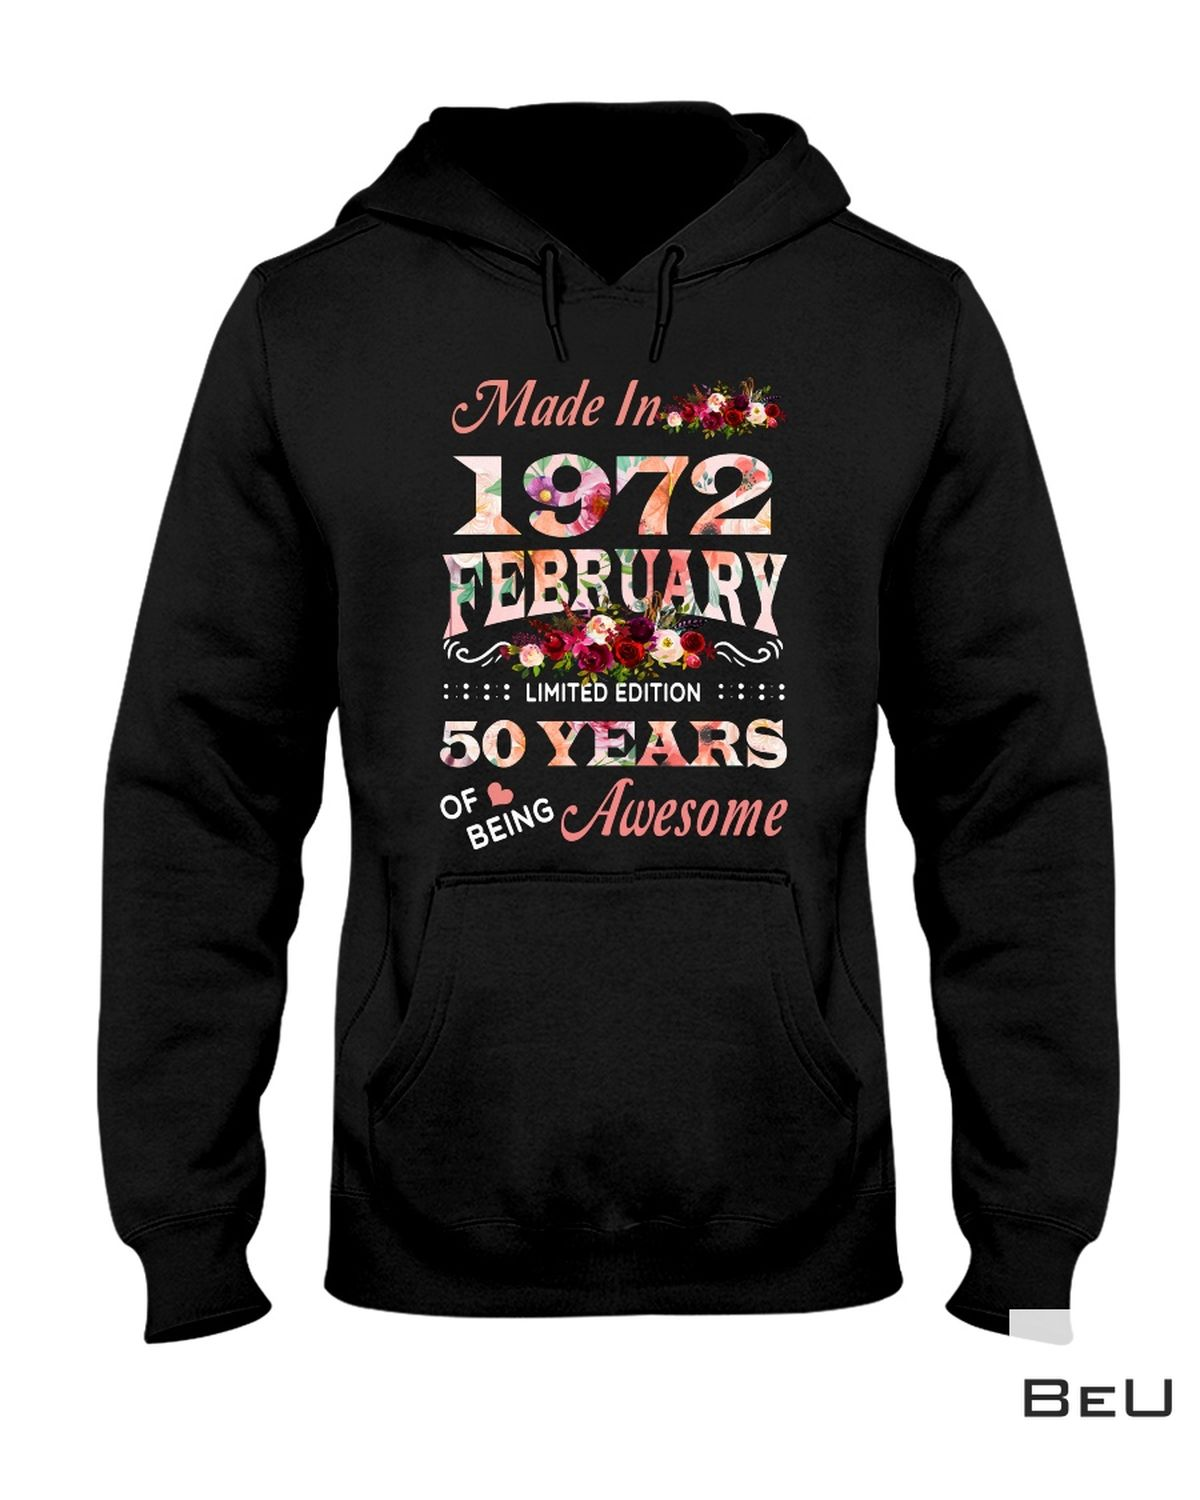 3D Made In 1972 February Limited Edition Shirt